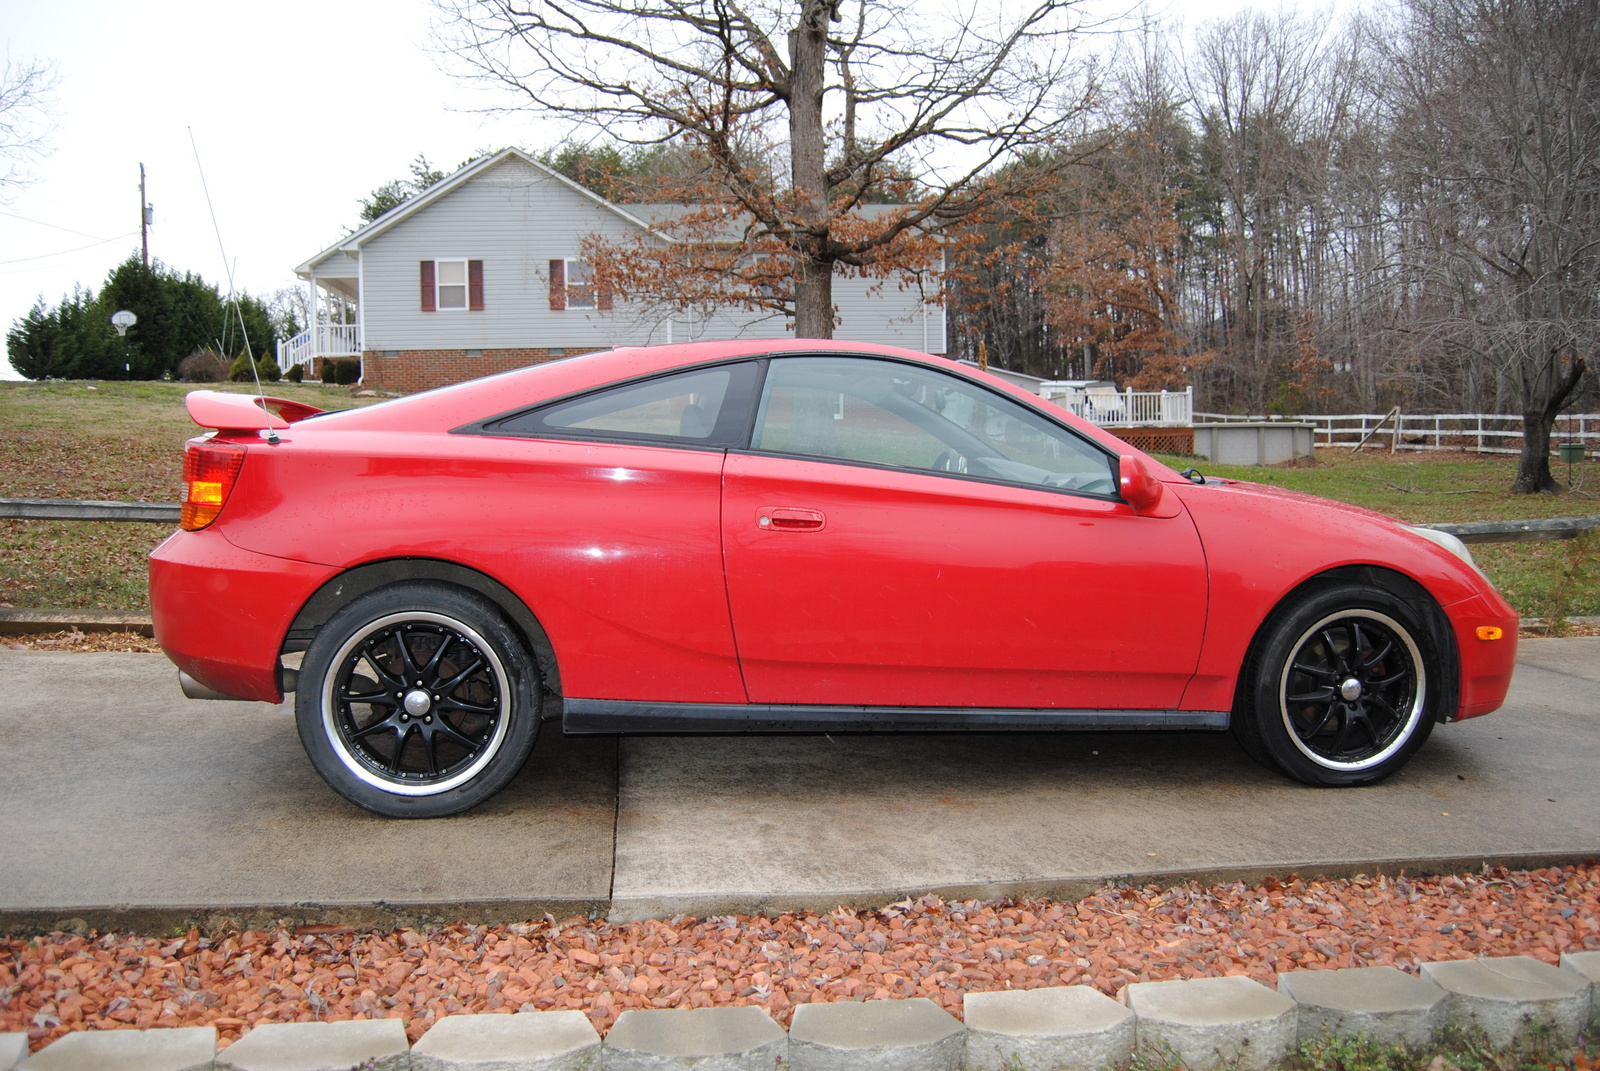 Picture of 2002 Toyota Celica GT, exterior